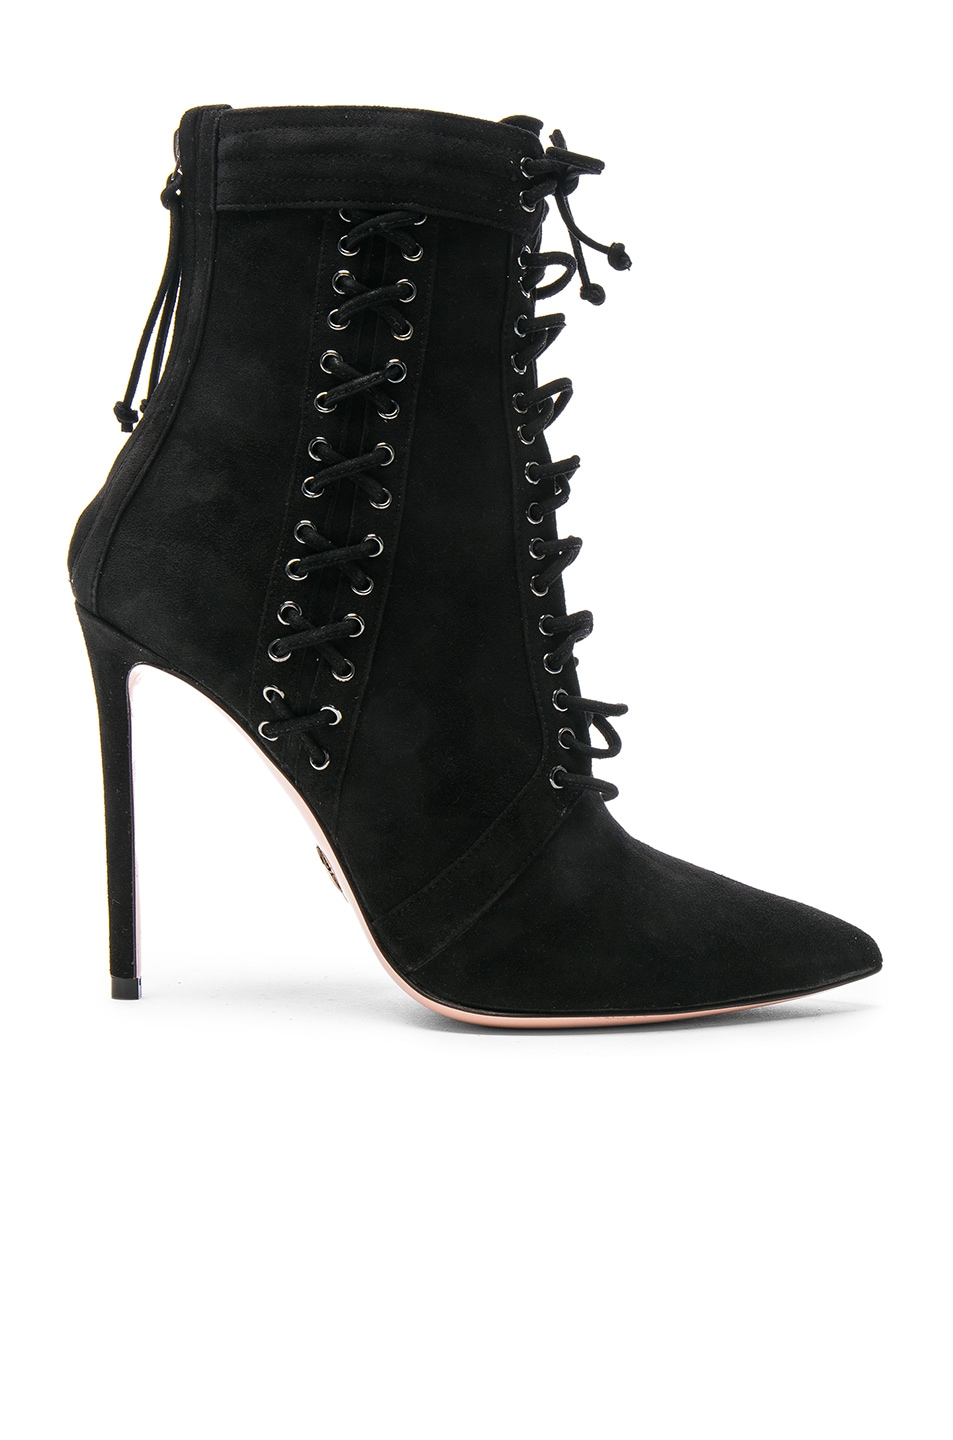 Image 1 of Oscar Tiye Suede Samira Booties in Black